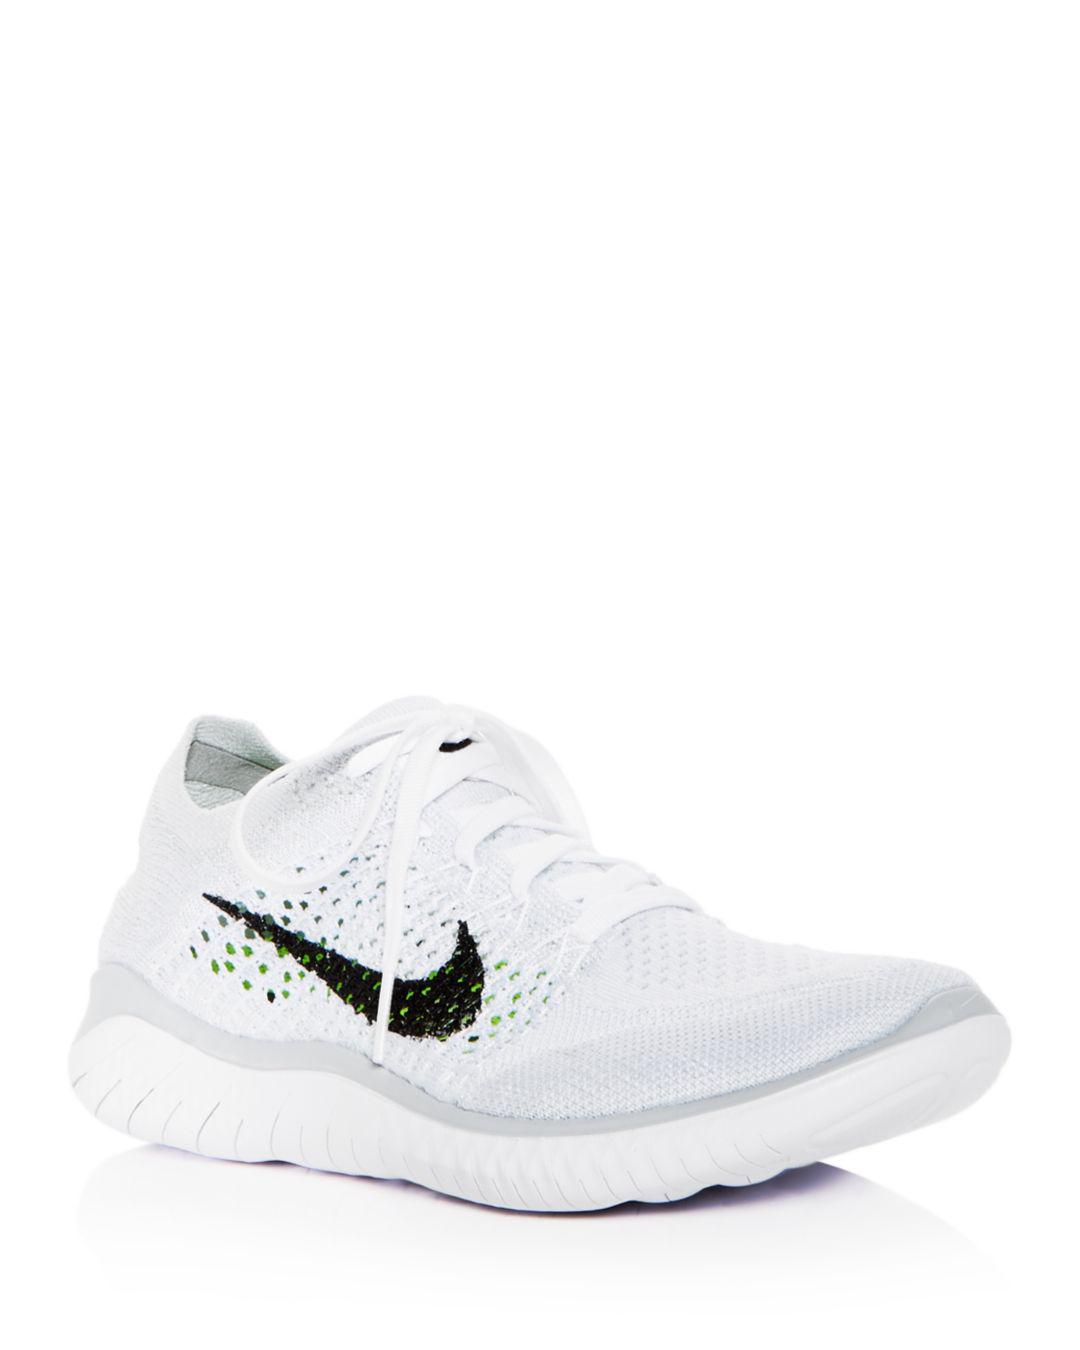 fb9550ce94f Lyst - Nike Women s Free Rn Flyknit 2018 Lace Up Sneakers in White ...